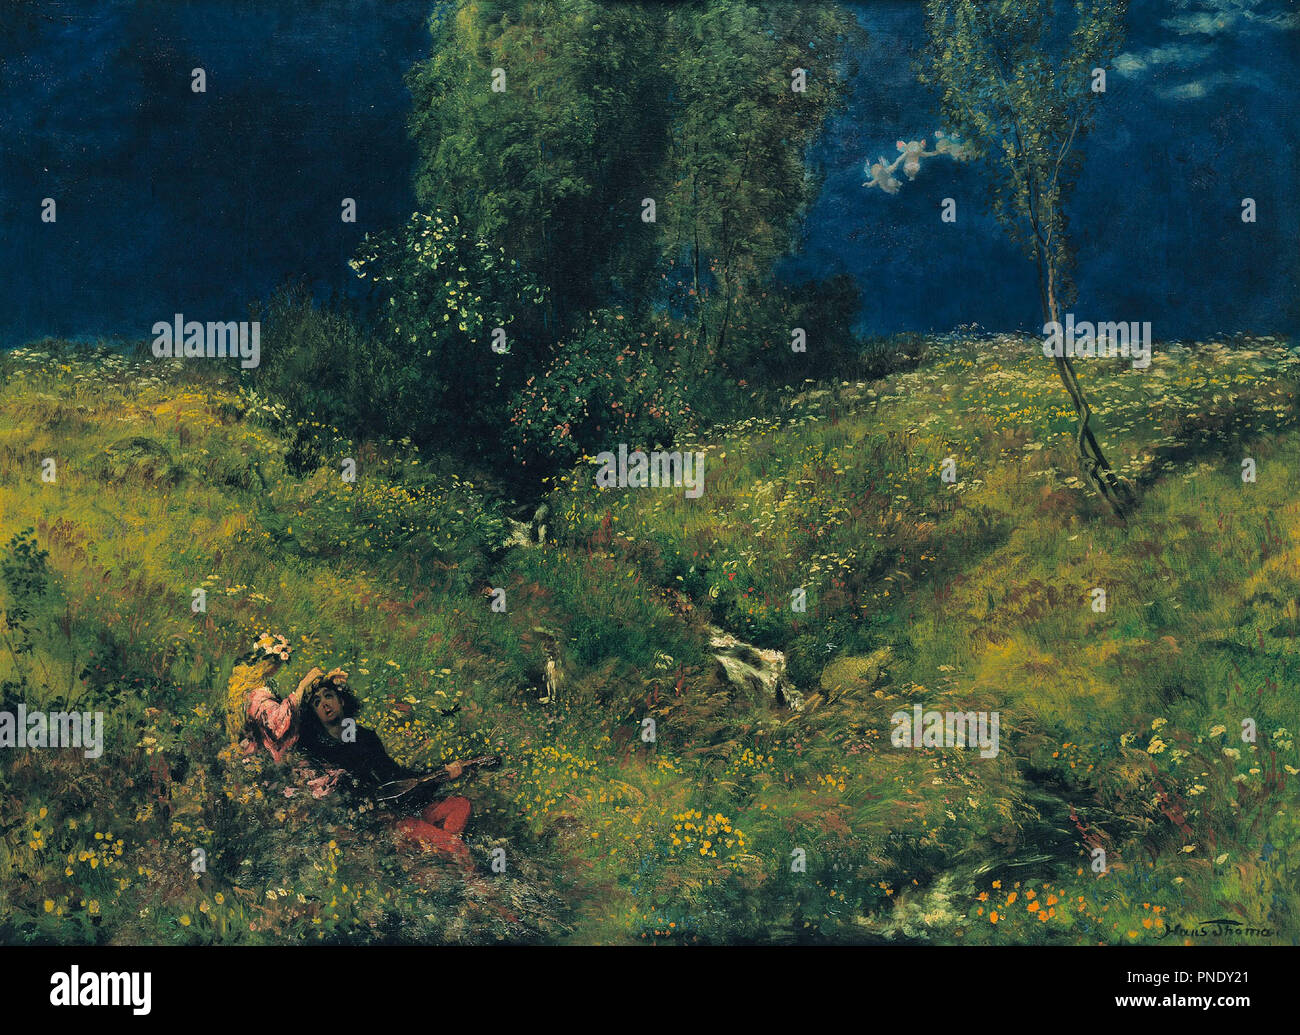 Summer. Date/Period: 1872. Painting. Oil on canvas. Height: 76 cm (29.9 in); Width: 104 cm (40.9 in). Author: Hans Thoma. THOMA, HANS. - Stock Image